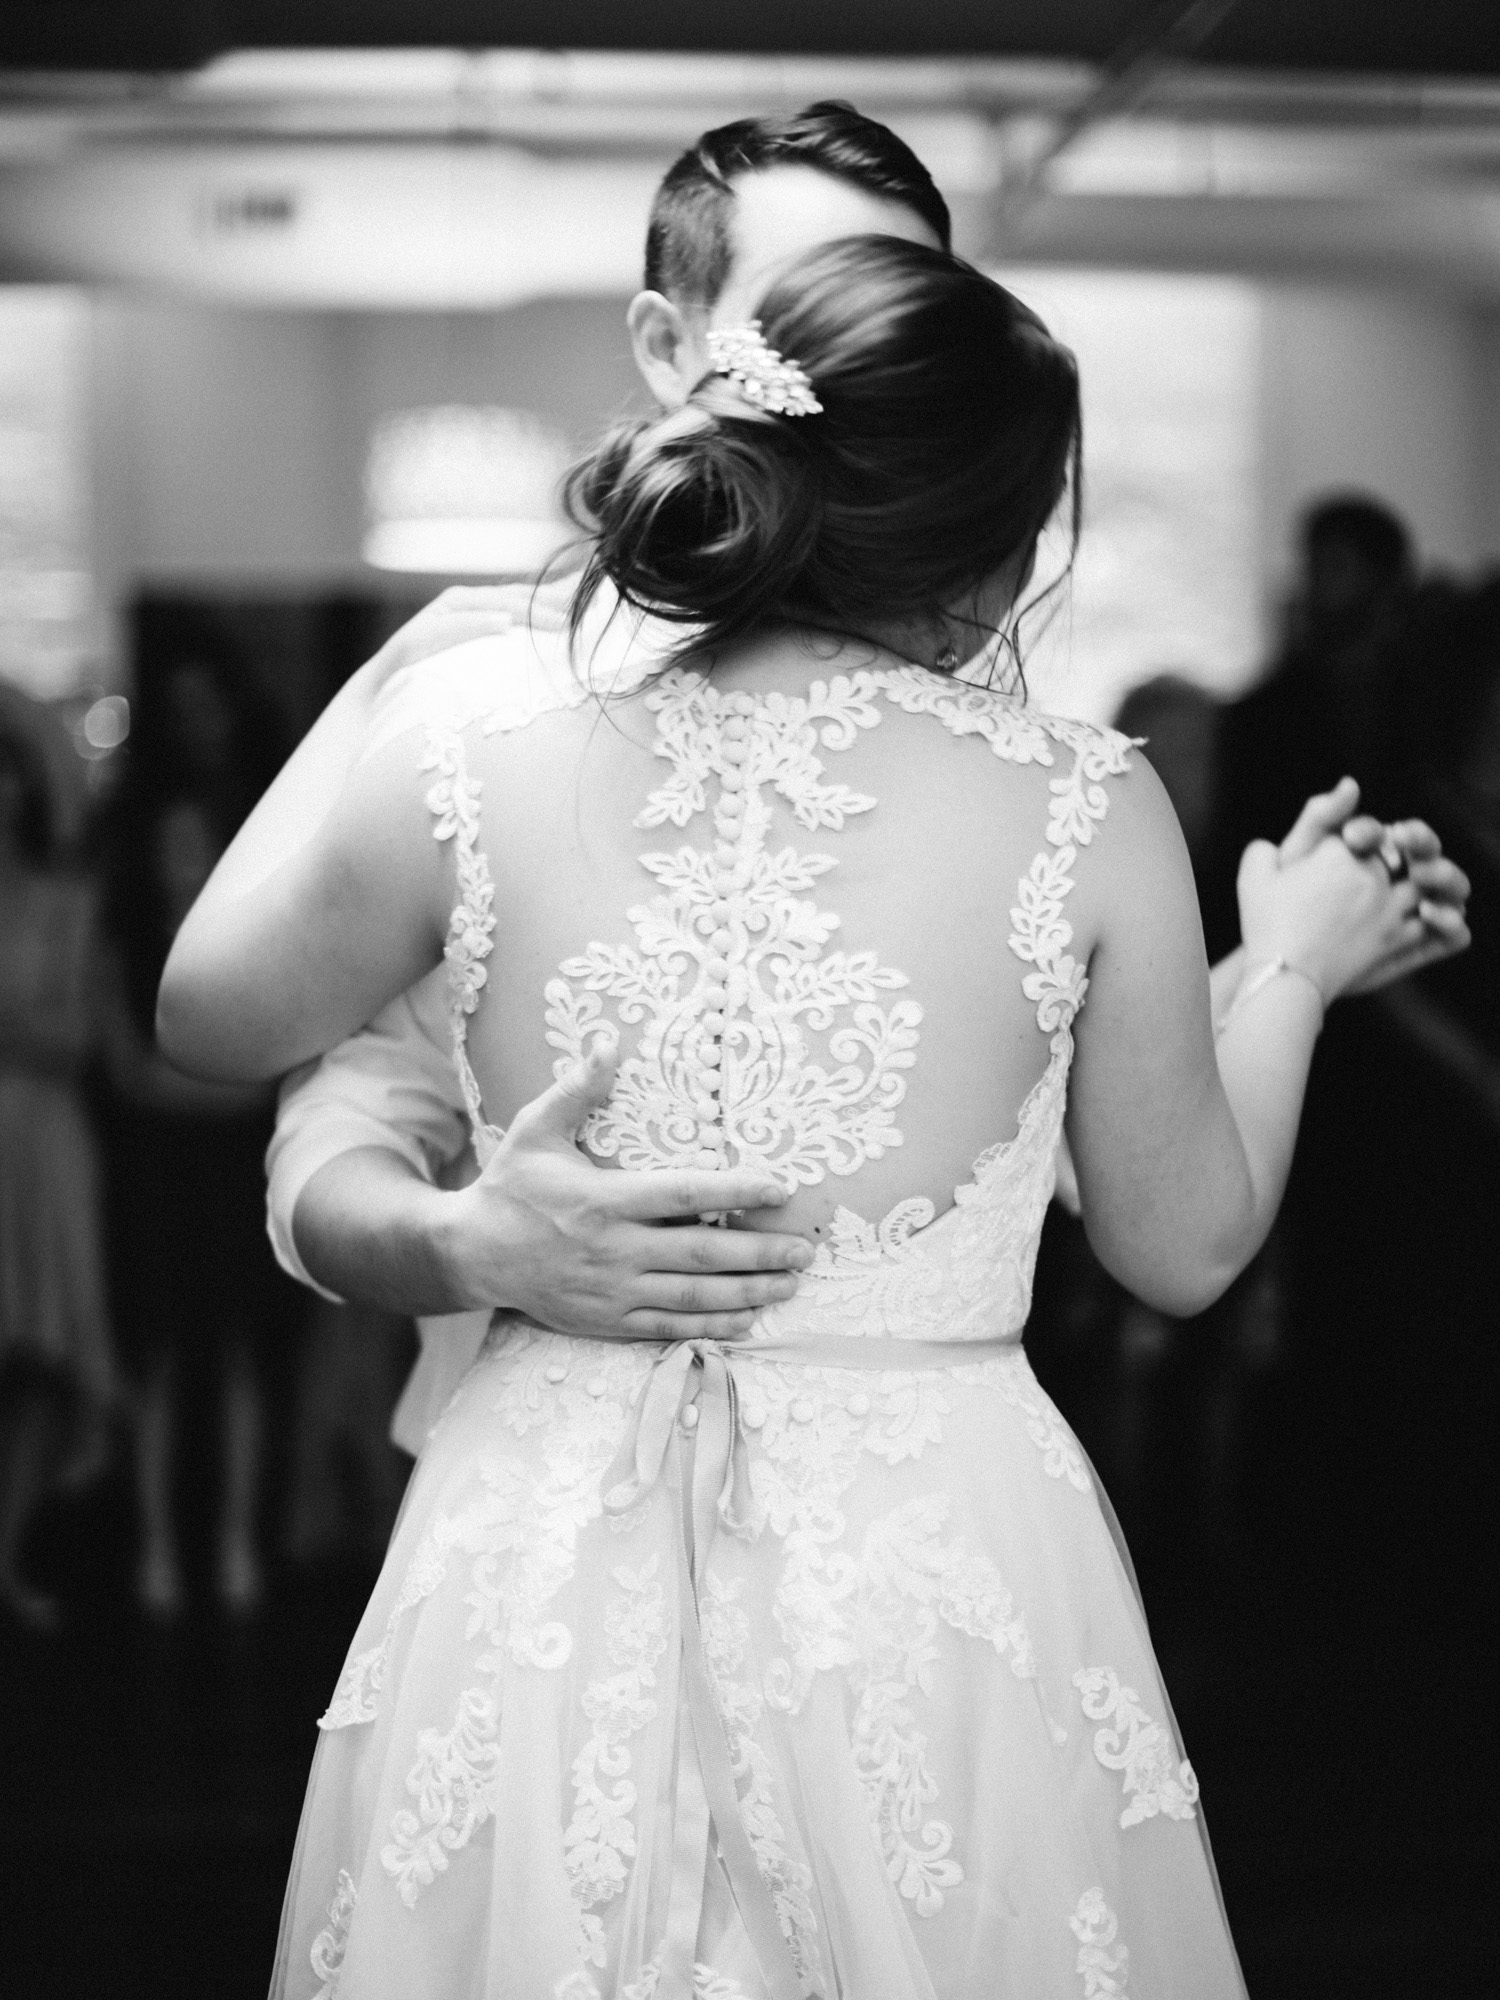 The intricate lace detail of a bride's gown is shown as she dances with her groom